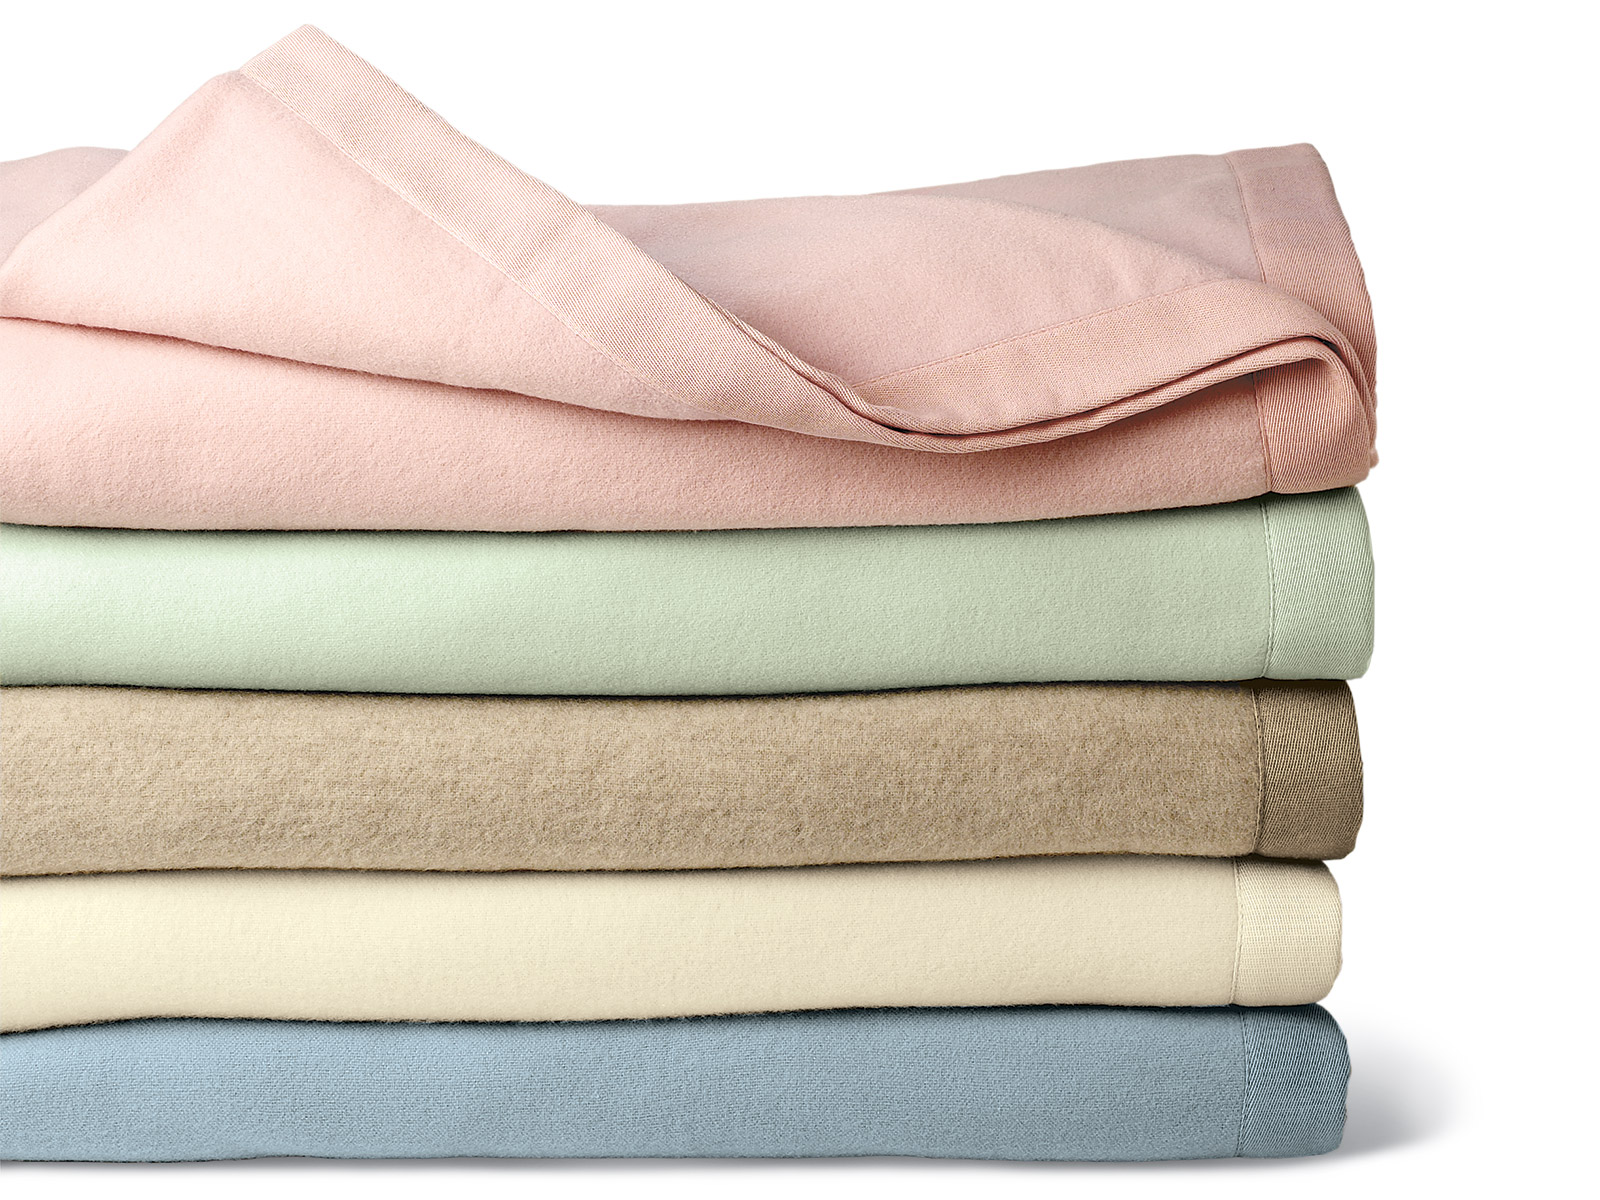 windchime cashmere blanket: pink, green, taupe, winter white. blue puojrdl